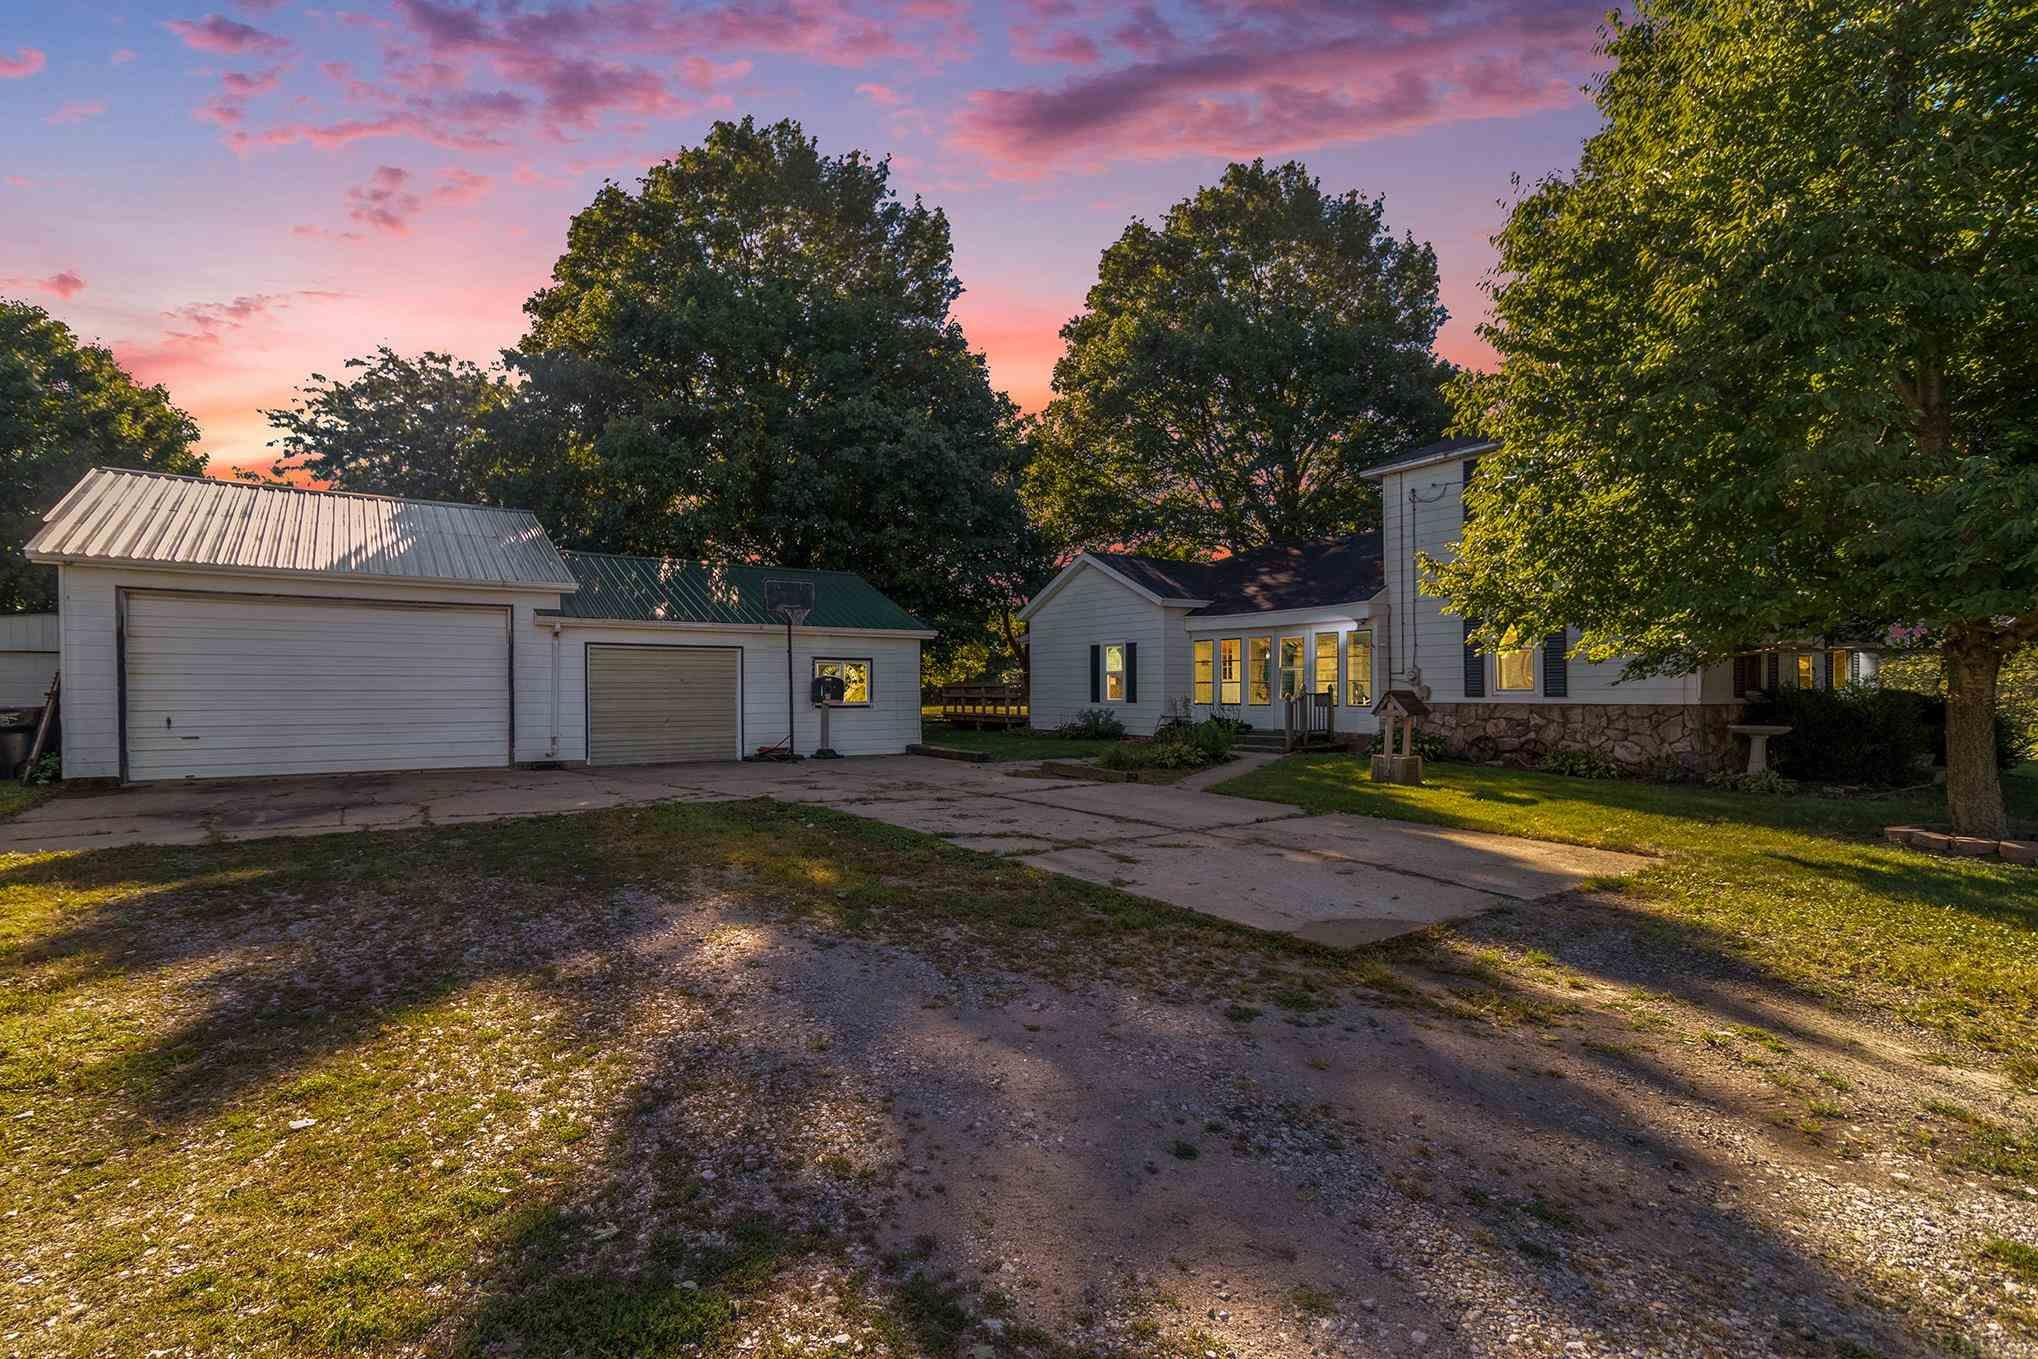 66152 Smilax North Liberty, IN 46554